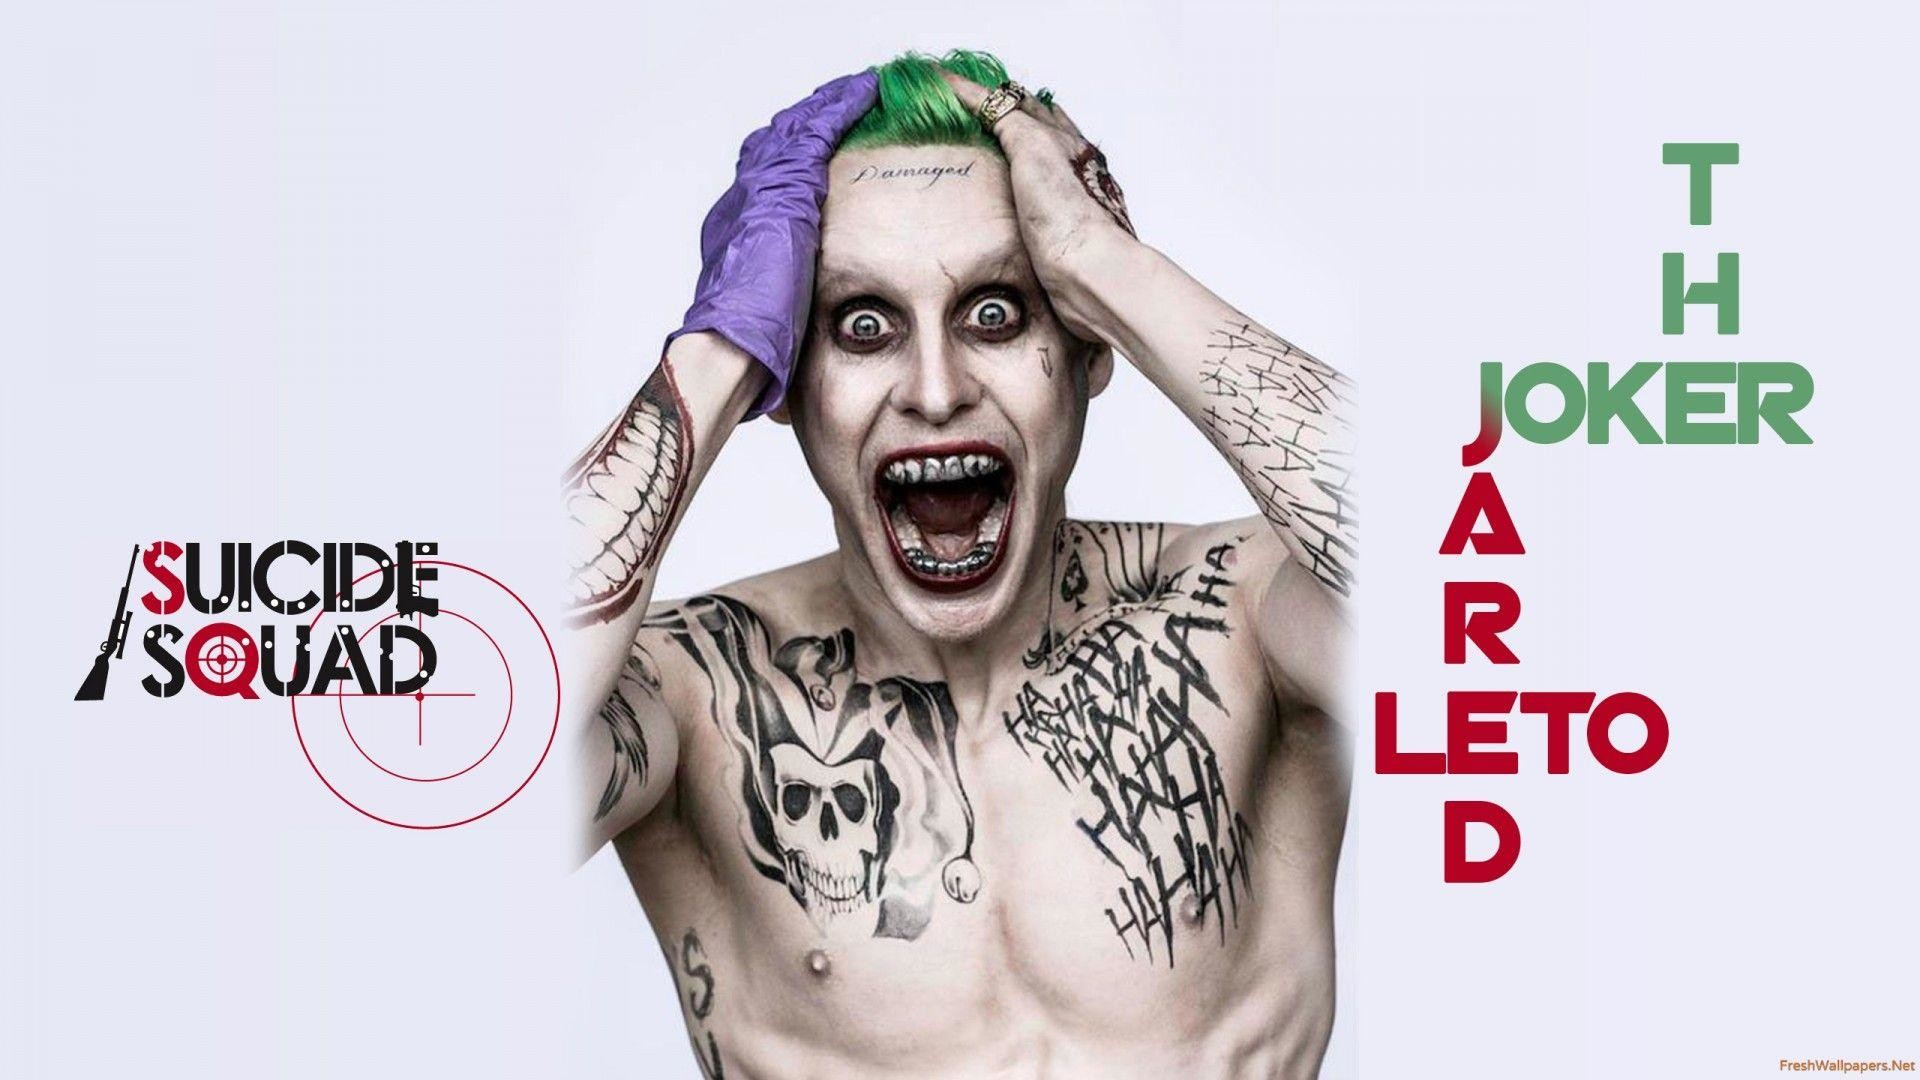 The Joker In Suicide Squad wallpapers | Freshwallpapers